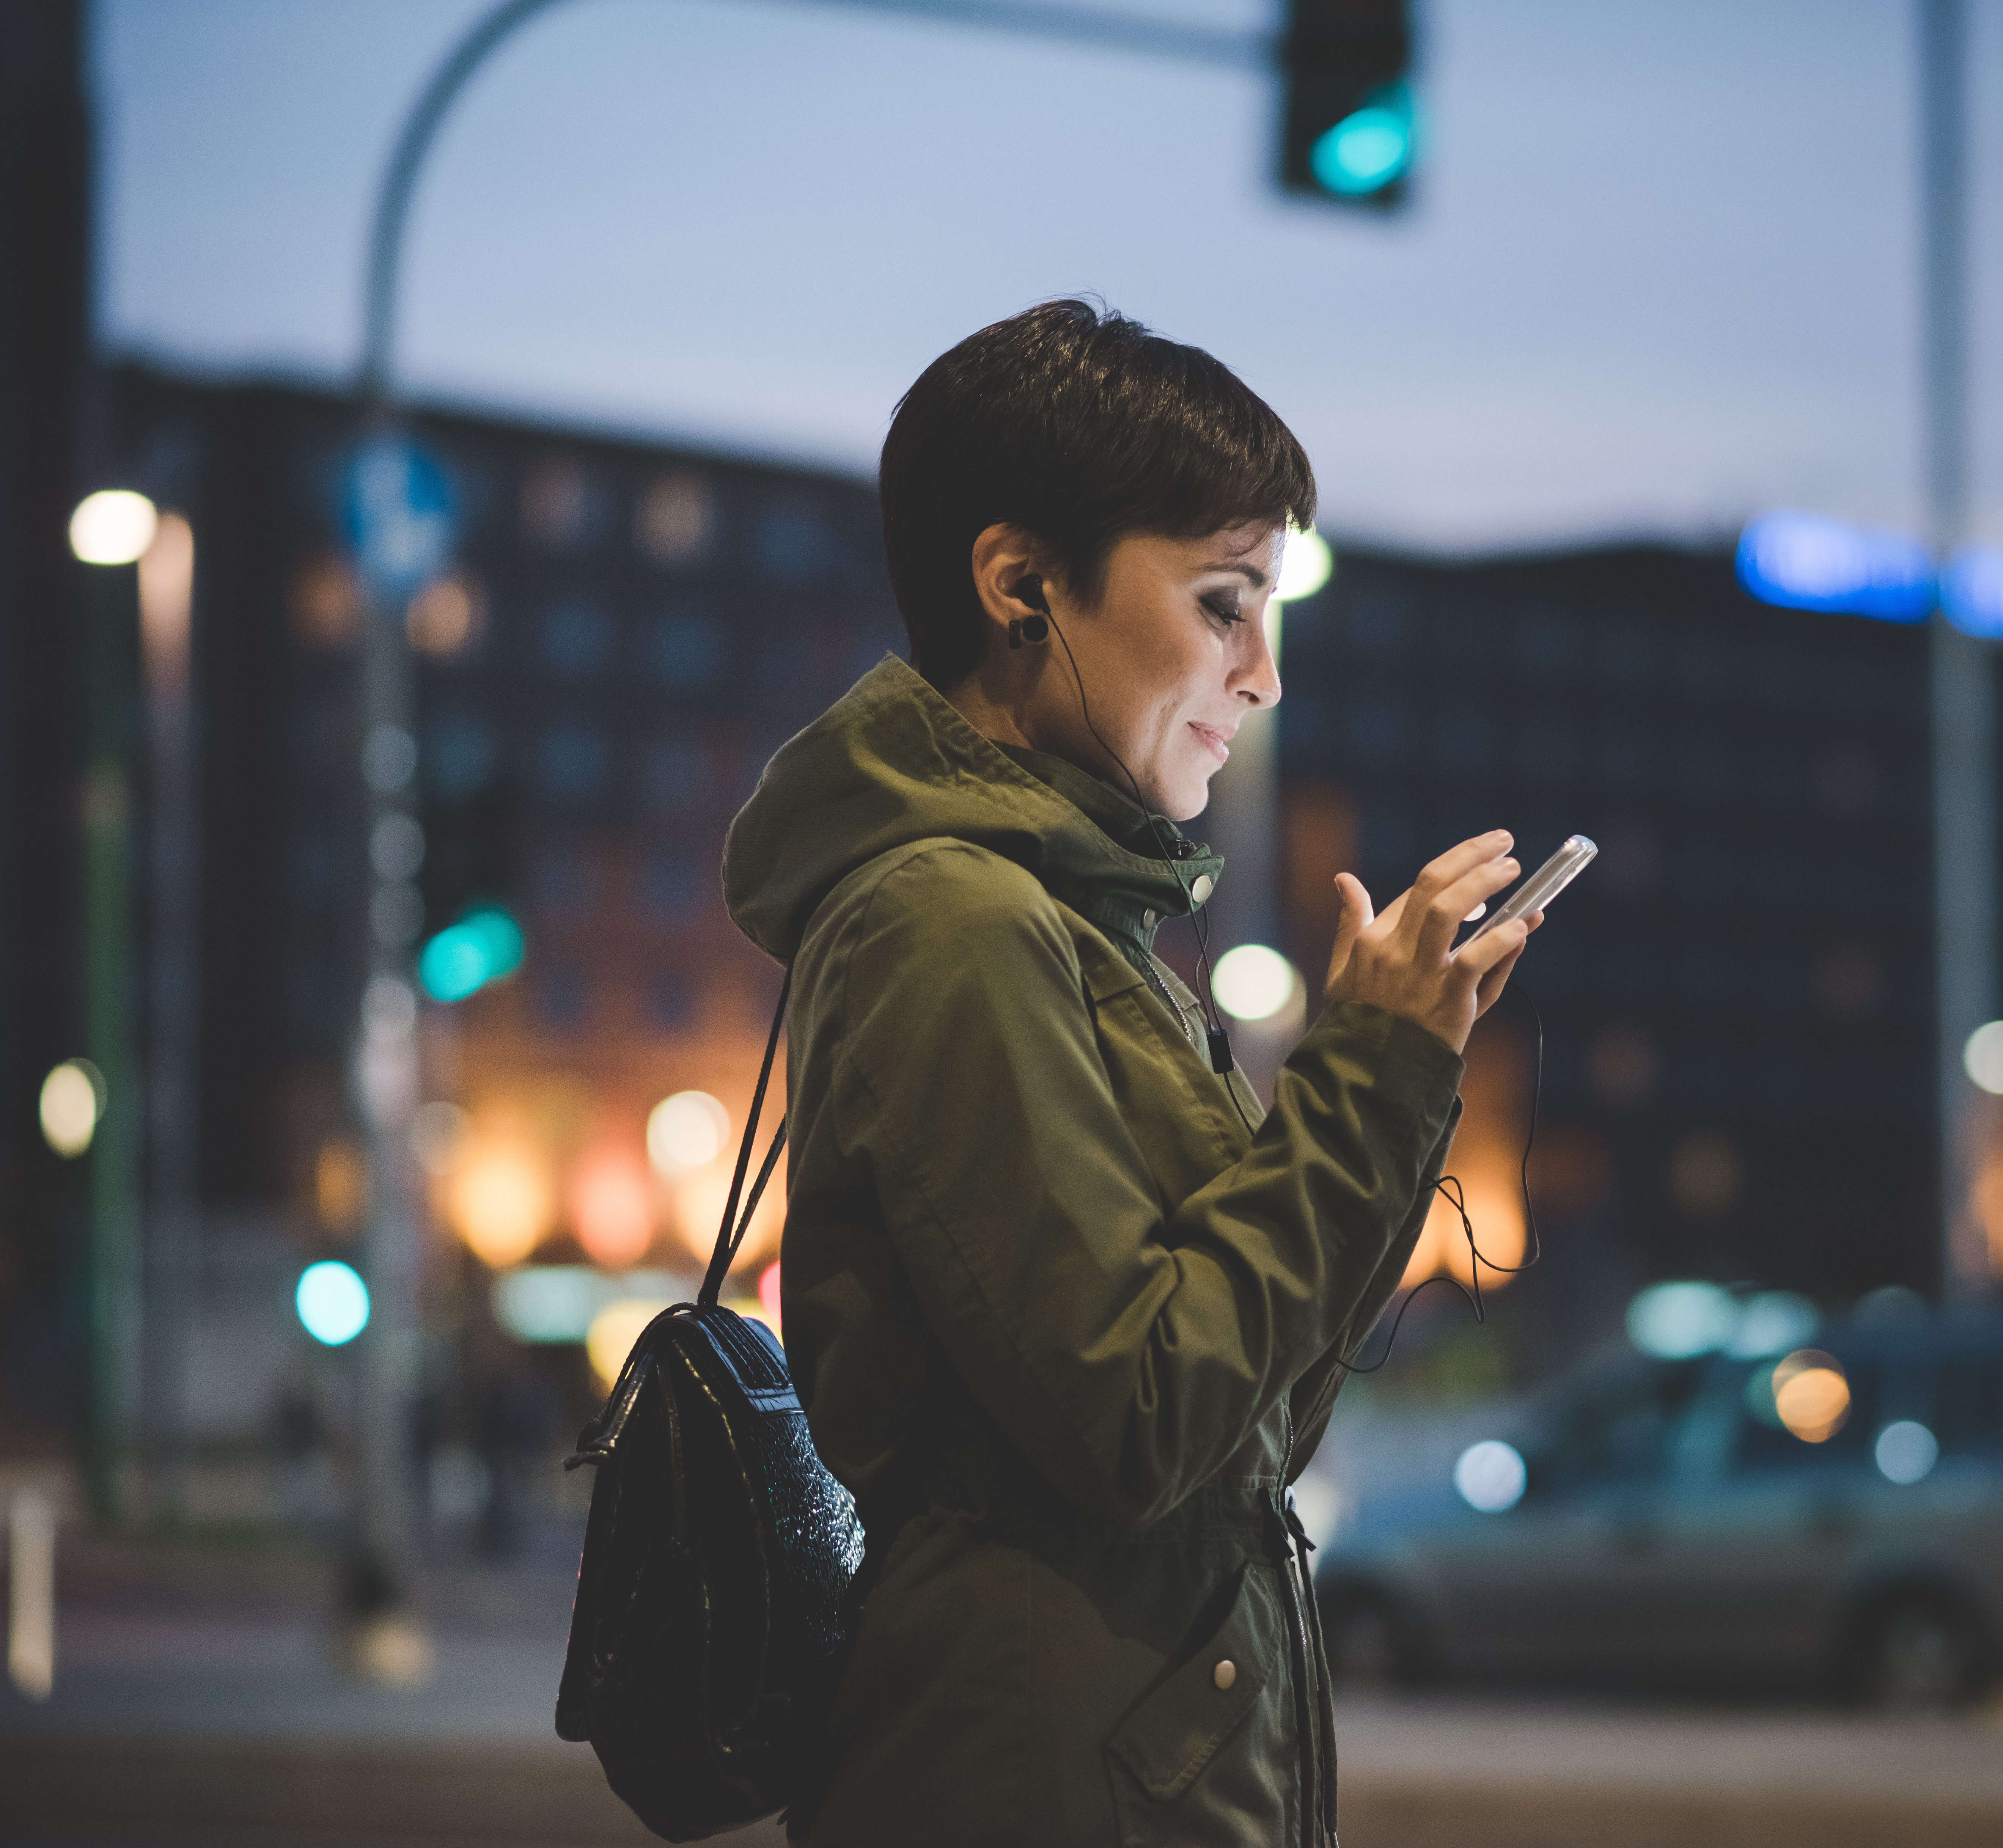 Woman holding a smartphone looking down the screen in city